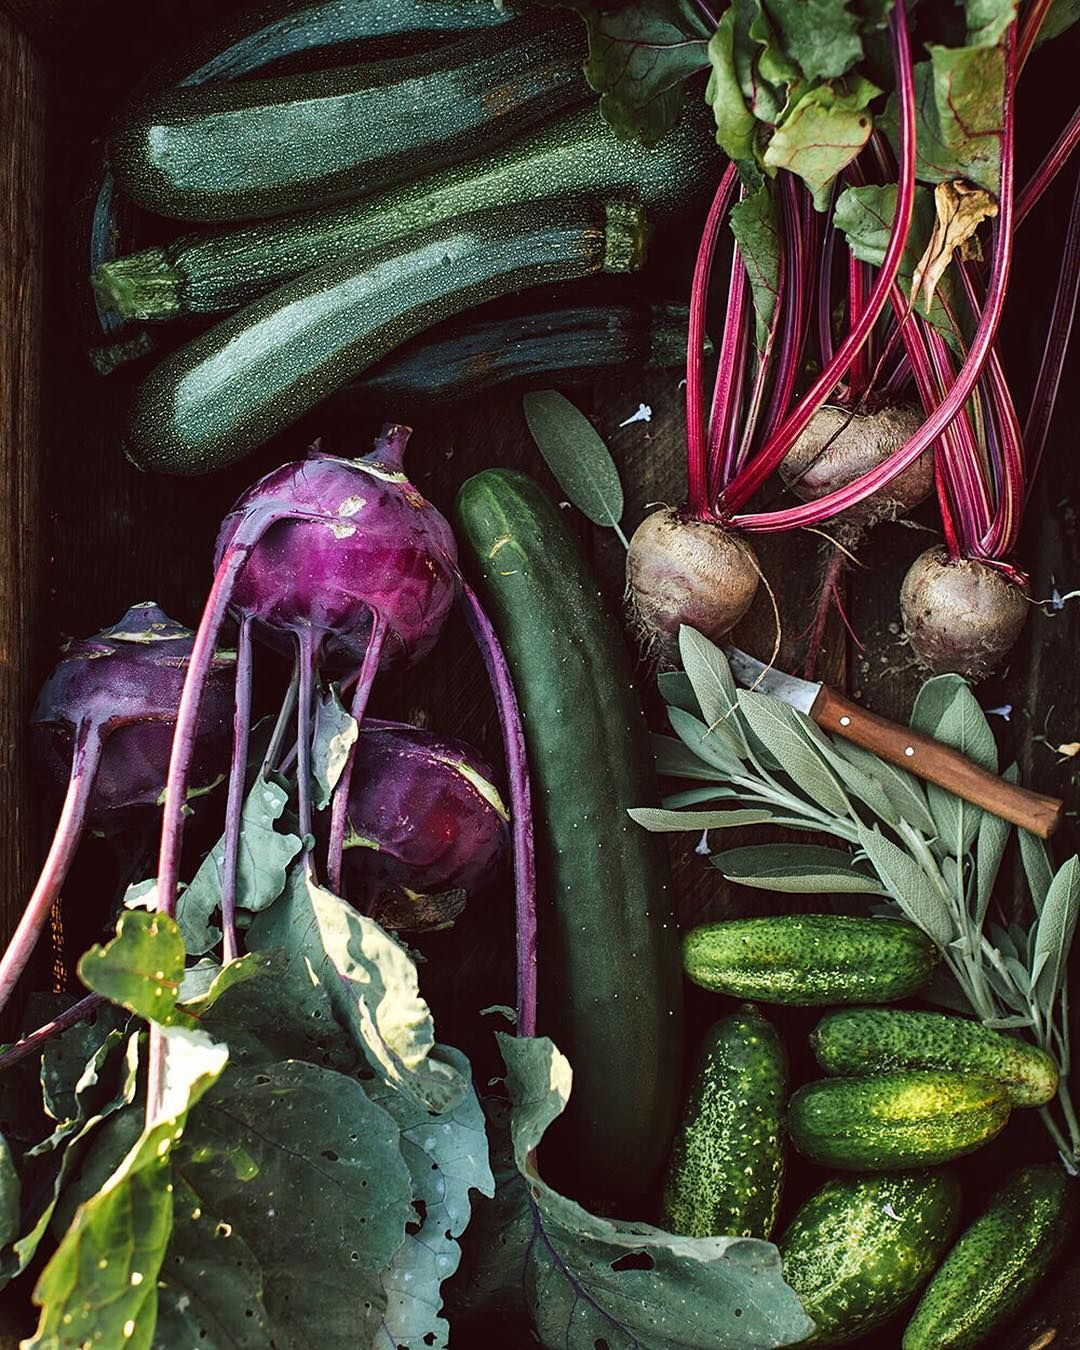 Yesterday S Harvest Was A Nice One Our First Beets For This Year Kohlrabi Cucumbers For Salad And For Pickling A Lot Of Home Grown Vegetables Zucchini Beets